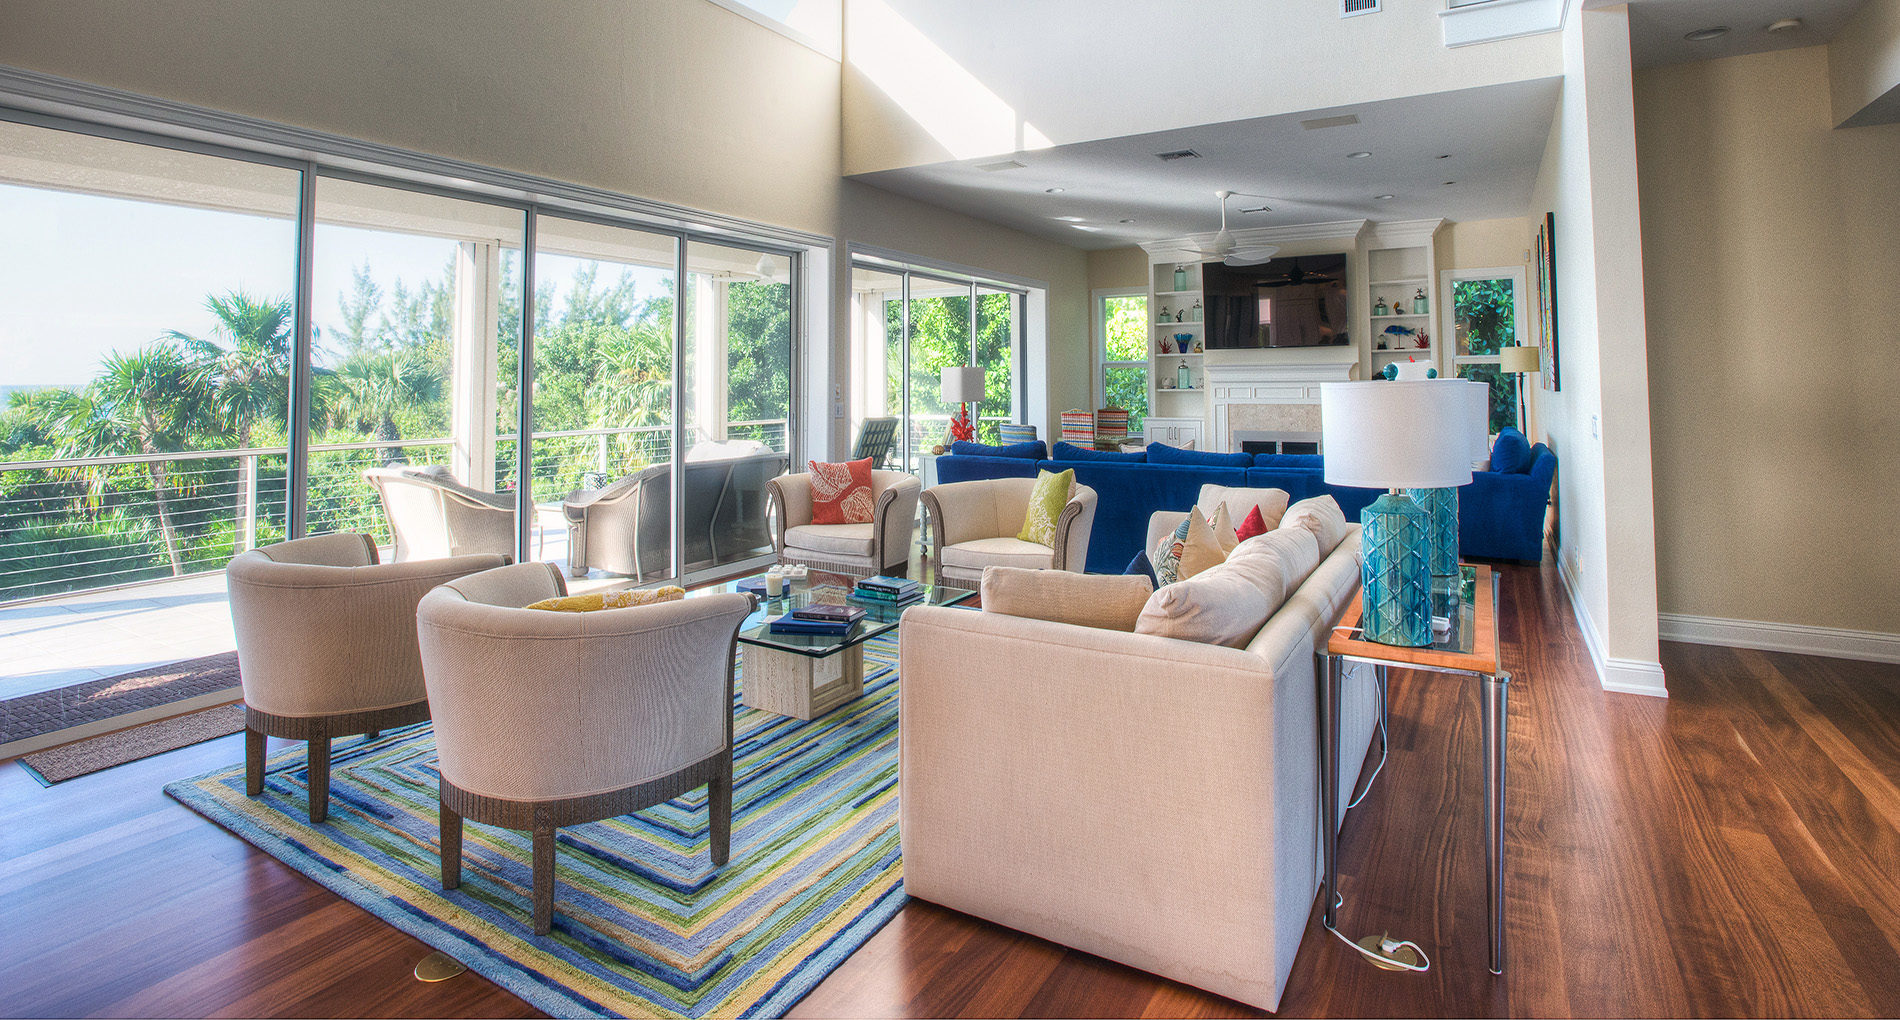 Beach Cottage Sanibel Sanibelbeachhome Slider